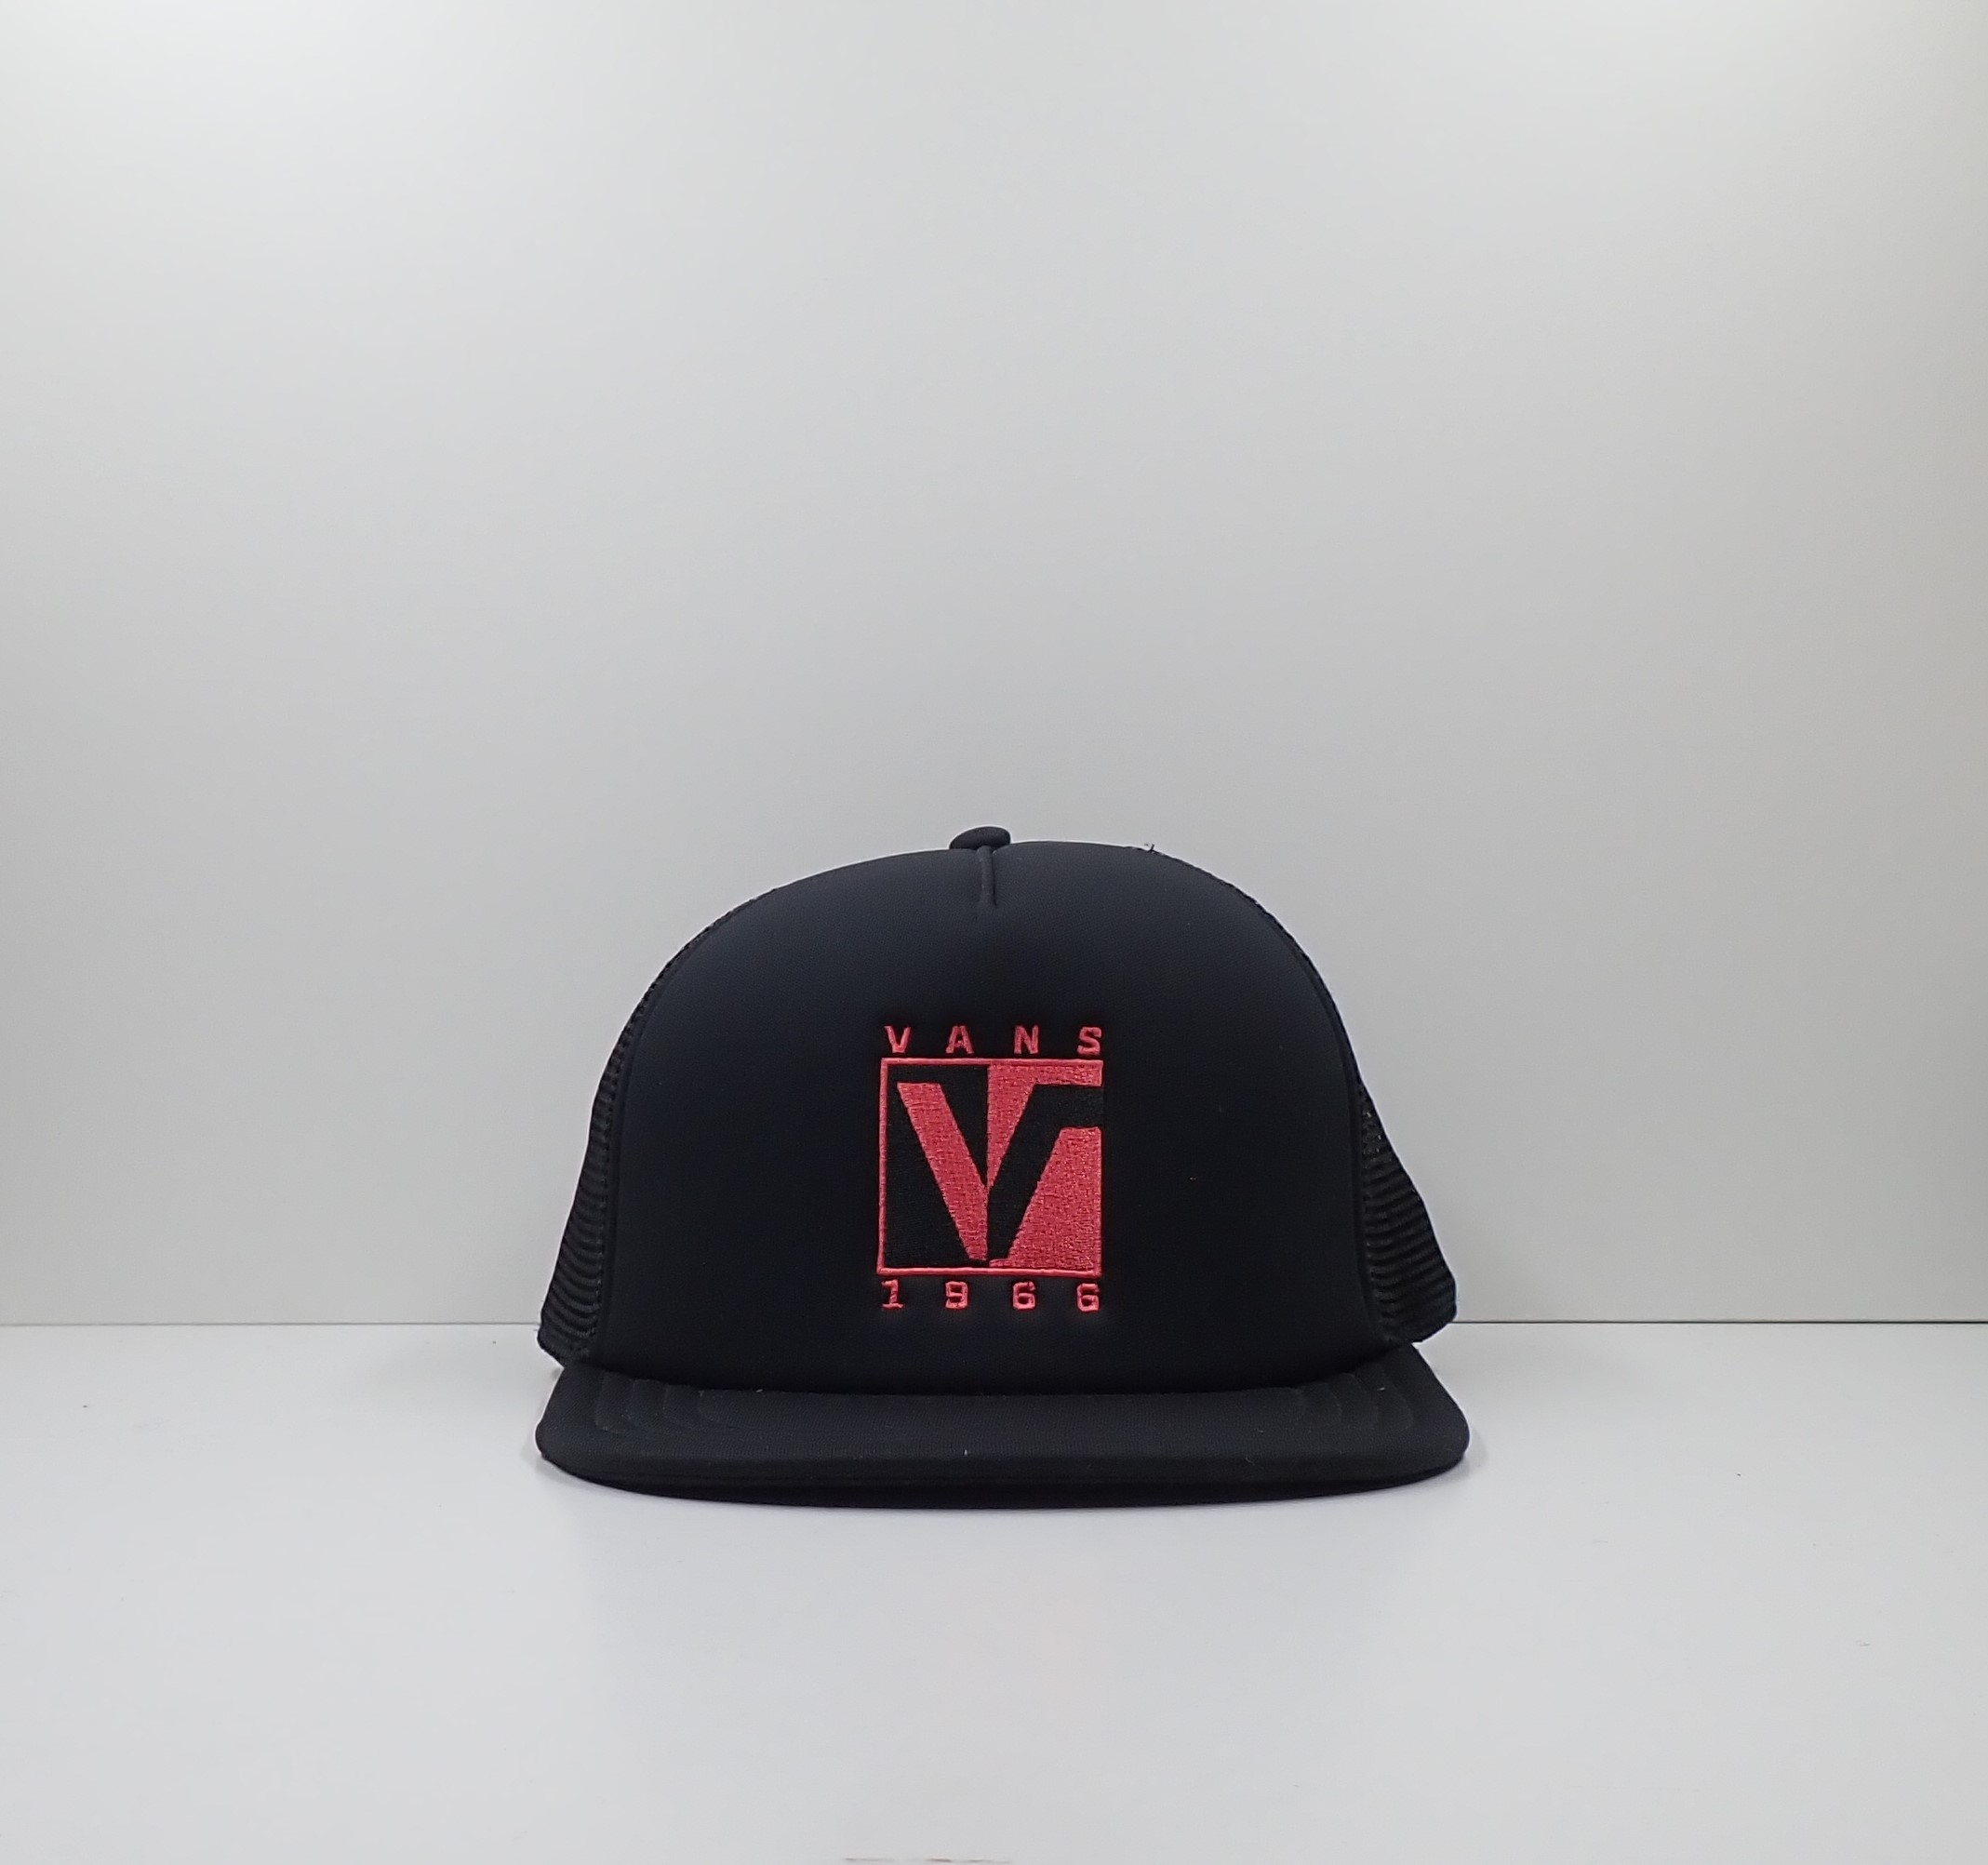 Vans Black Trucker Cap